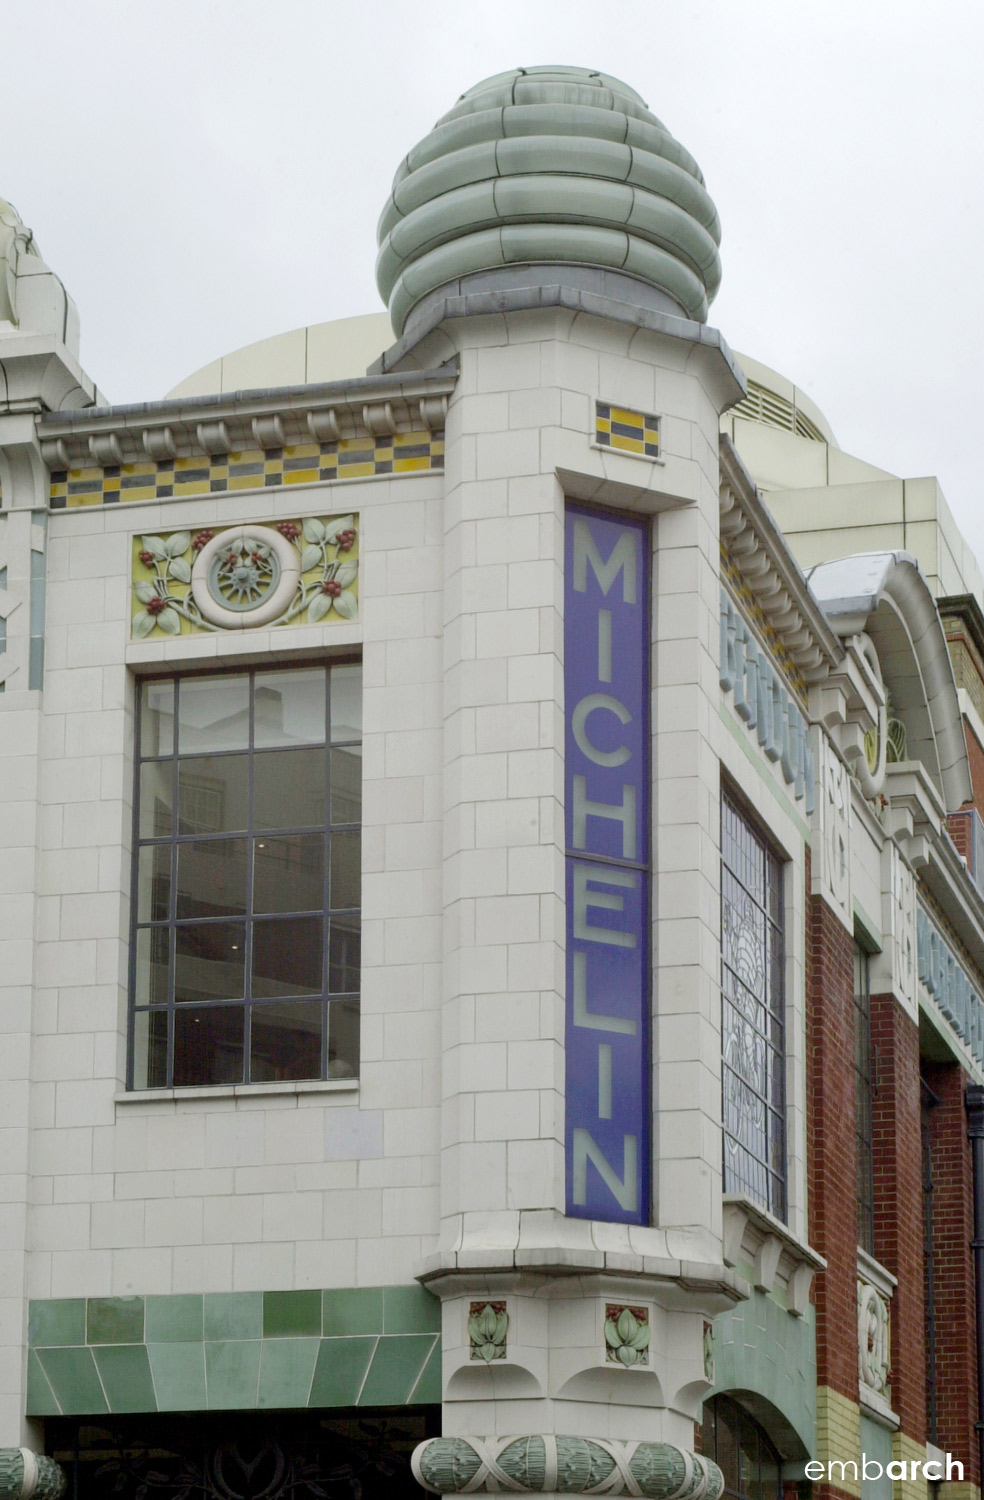 Michelin House - exterior detail